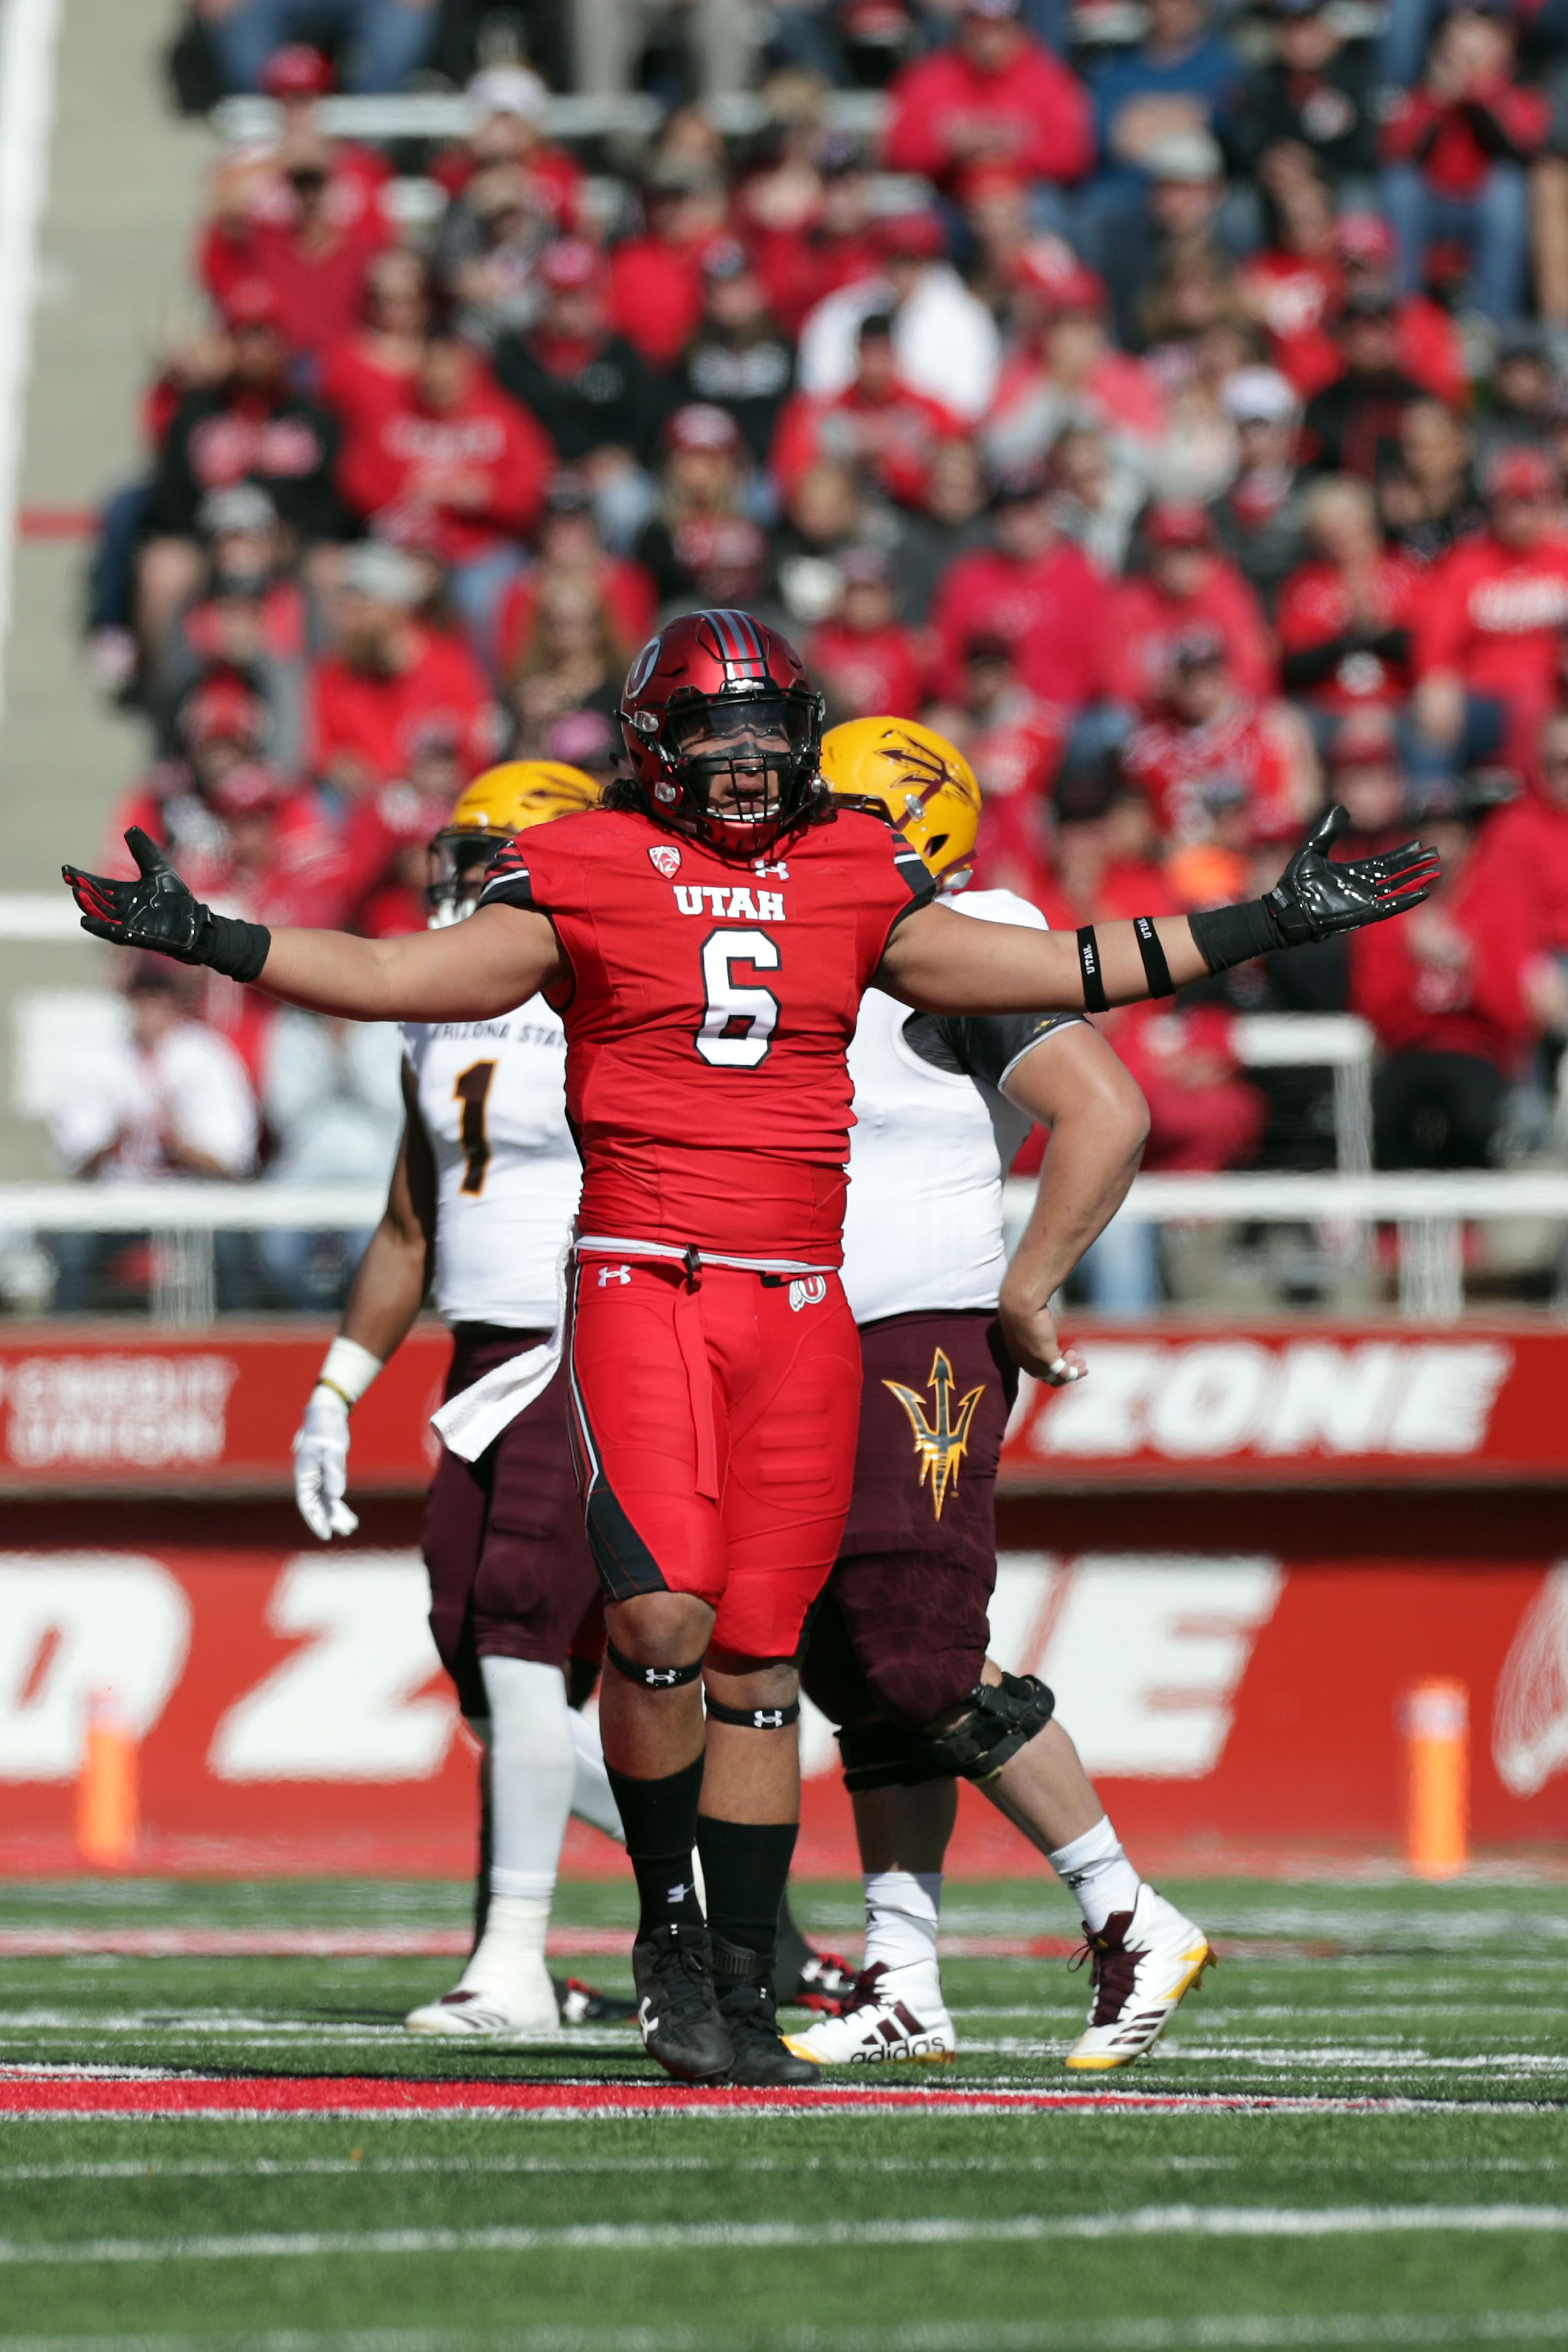 Utah's Defensive End celebrates after a play against